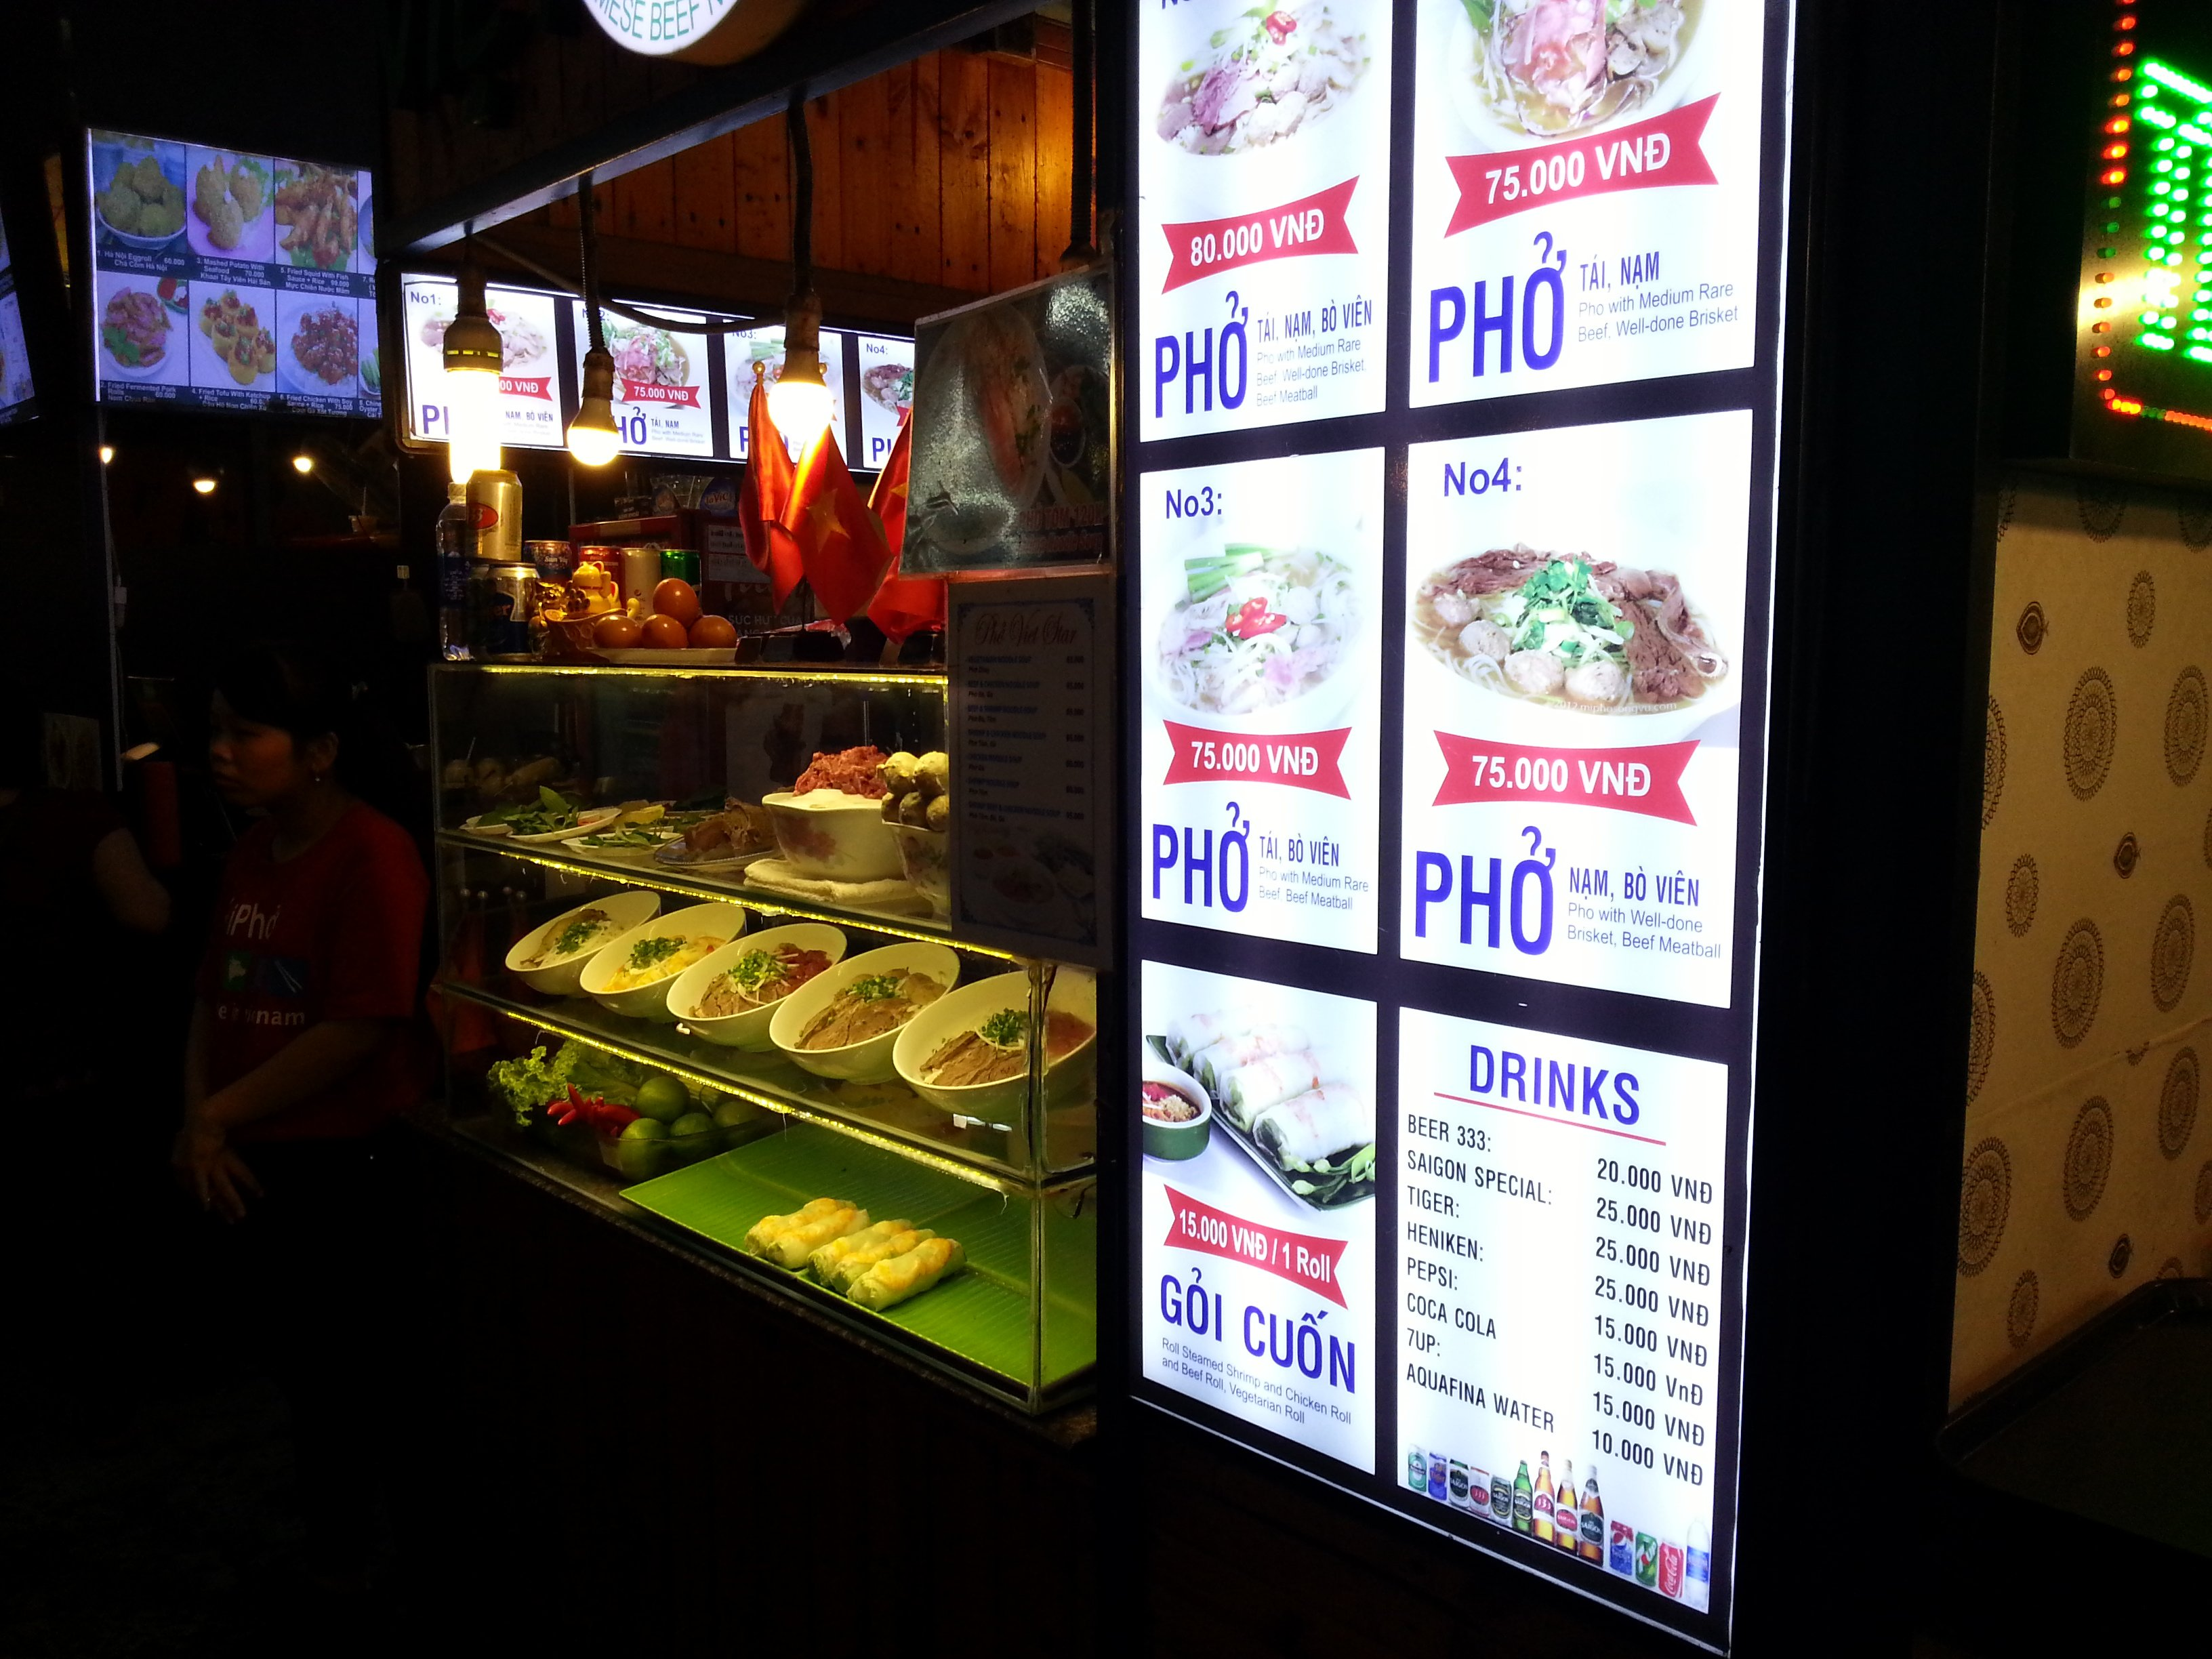 Pho stall at Ben Thanh Street Food Market